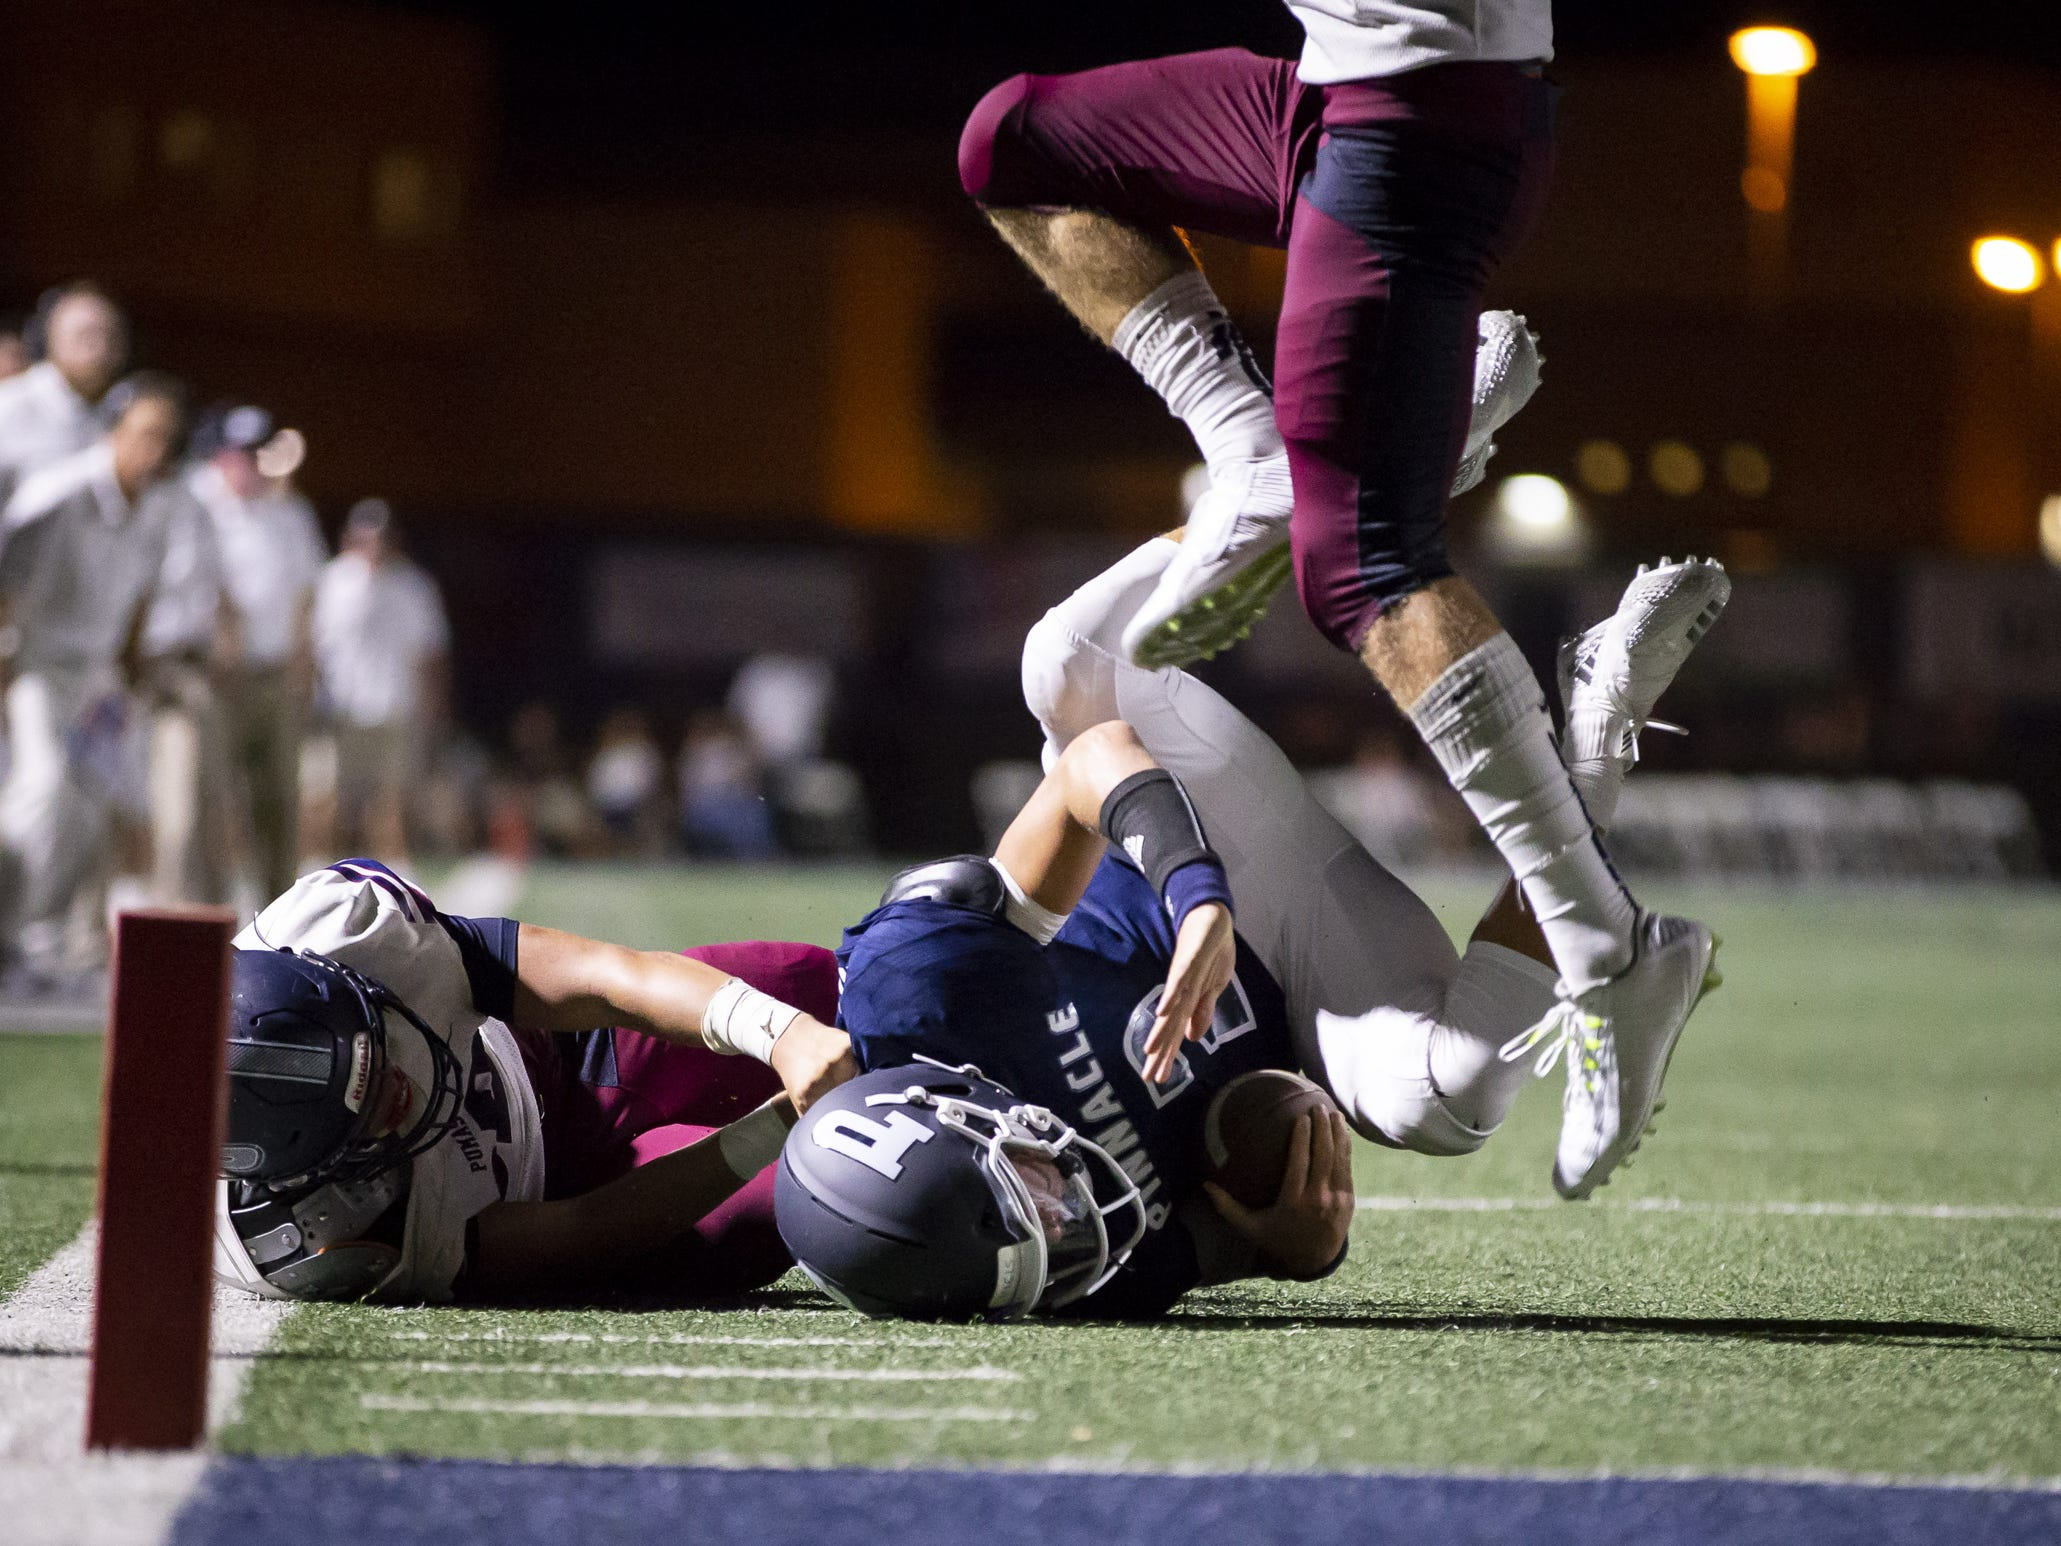 Quarterback Spencer Rattler (2) of the Pinnacle Pioneers is brought down by defensive end Ryan Short (33) of the Perry Pumas at Pinnacle High School on Friday, August 17, 2018 in Phoenix, Arizona.